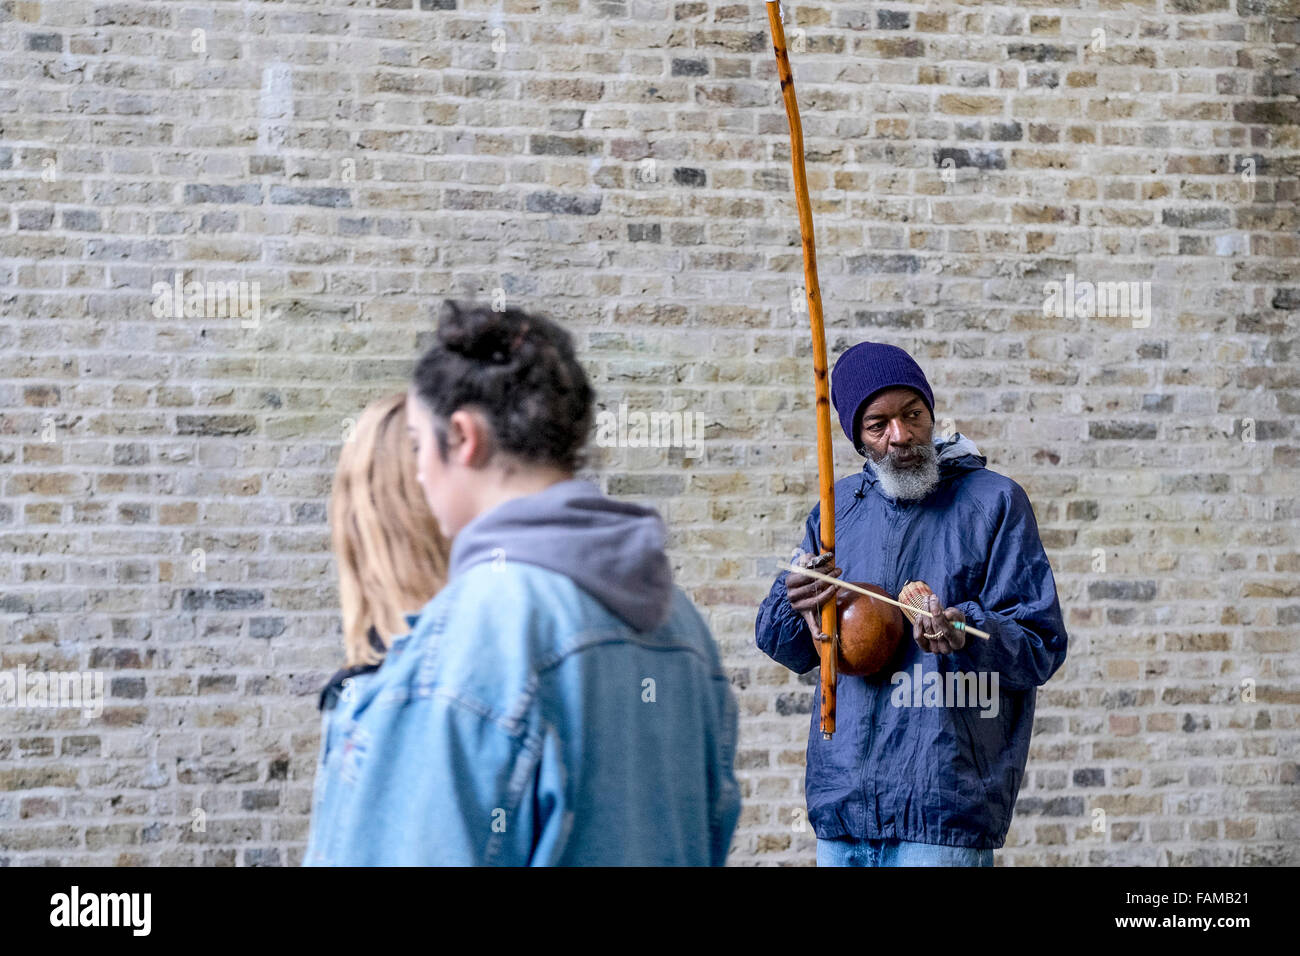 On the South Bank in London a busker, Rabimsha plays a berimbau, a traditional African/Brazilian instrument. - Stock Image